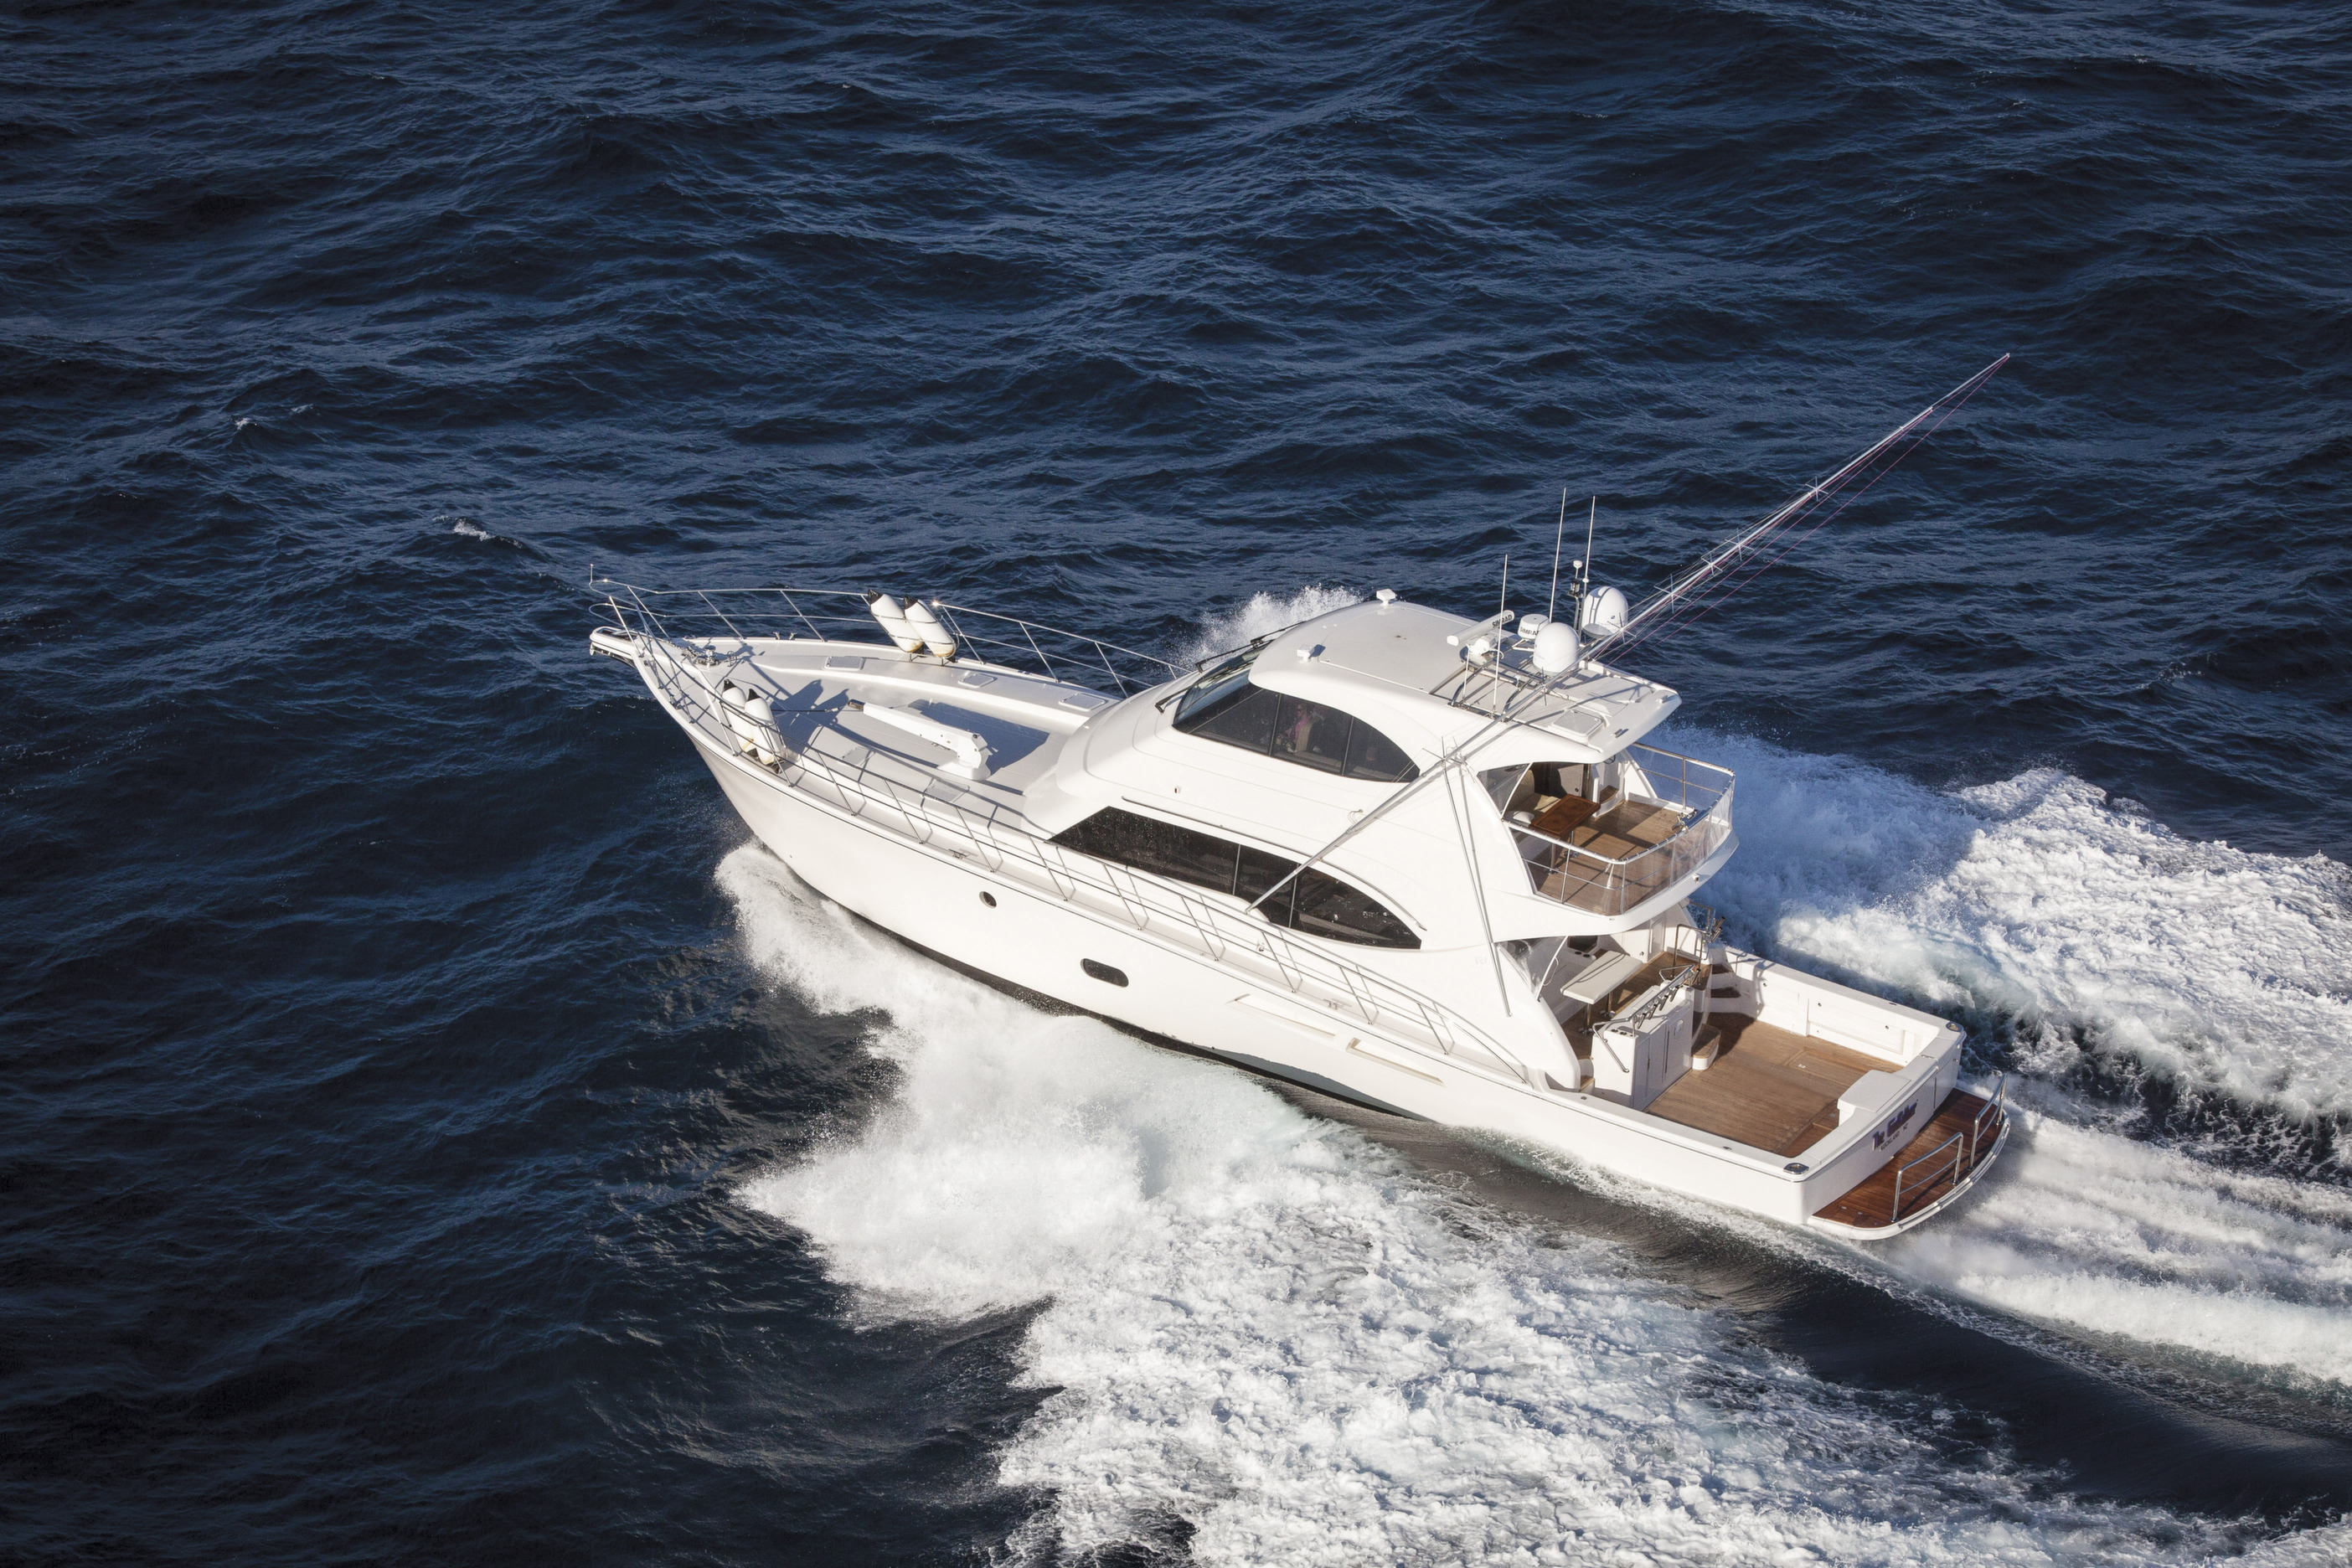 Riviera's flagship 75 Enclosed Flybridge is the ultimate long-range cruiser offering a choice of engine options